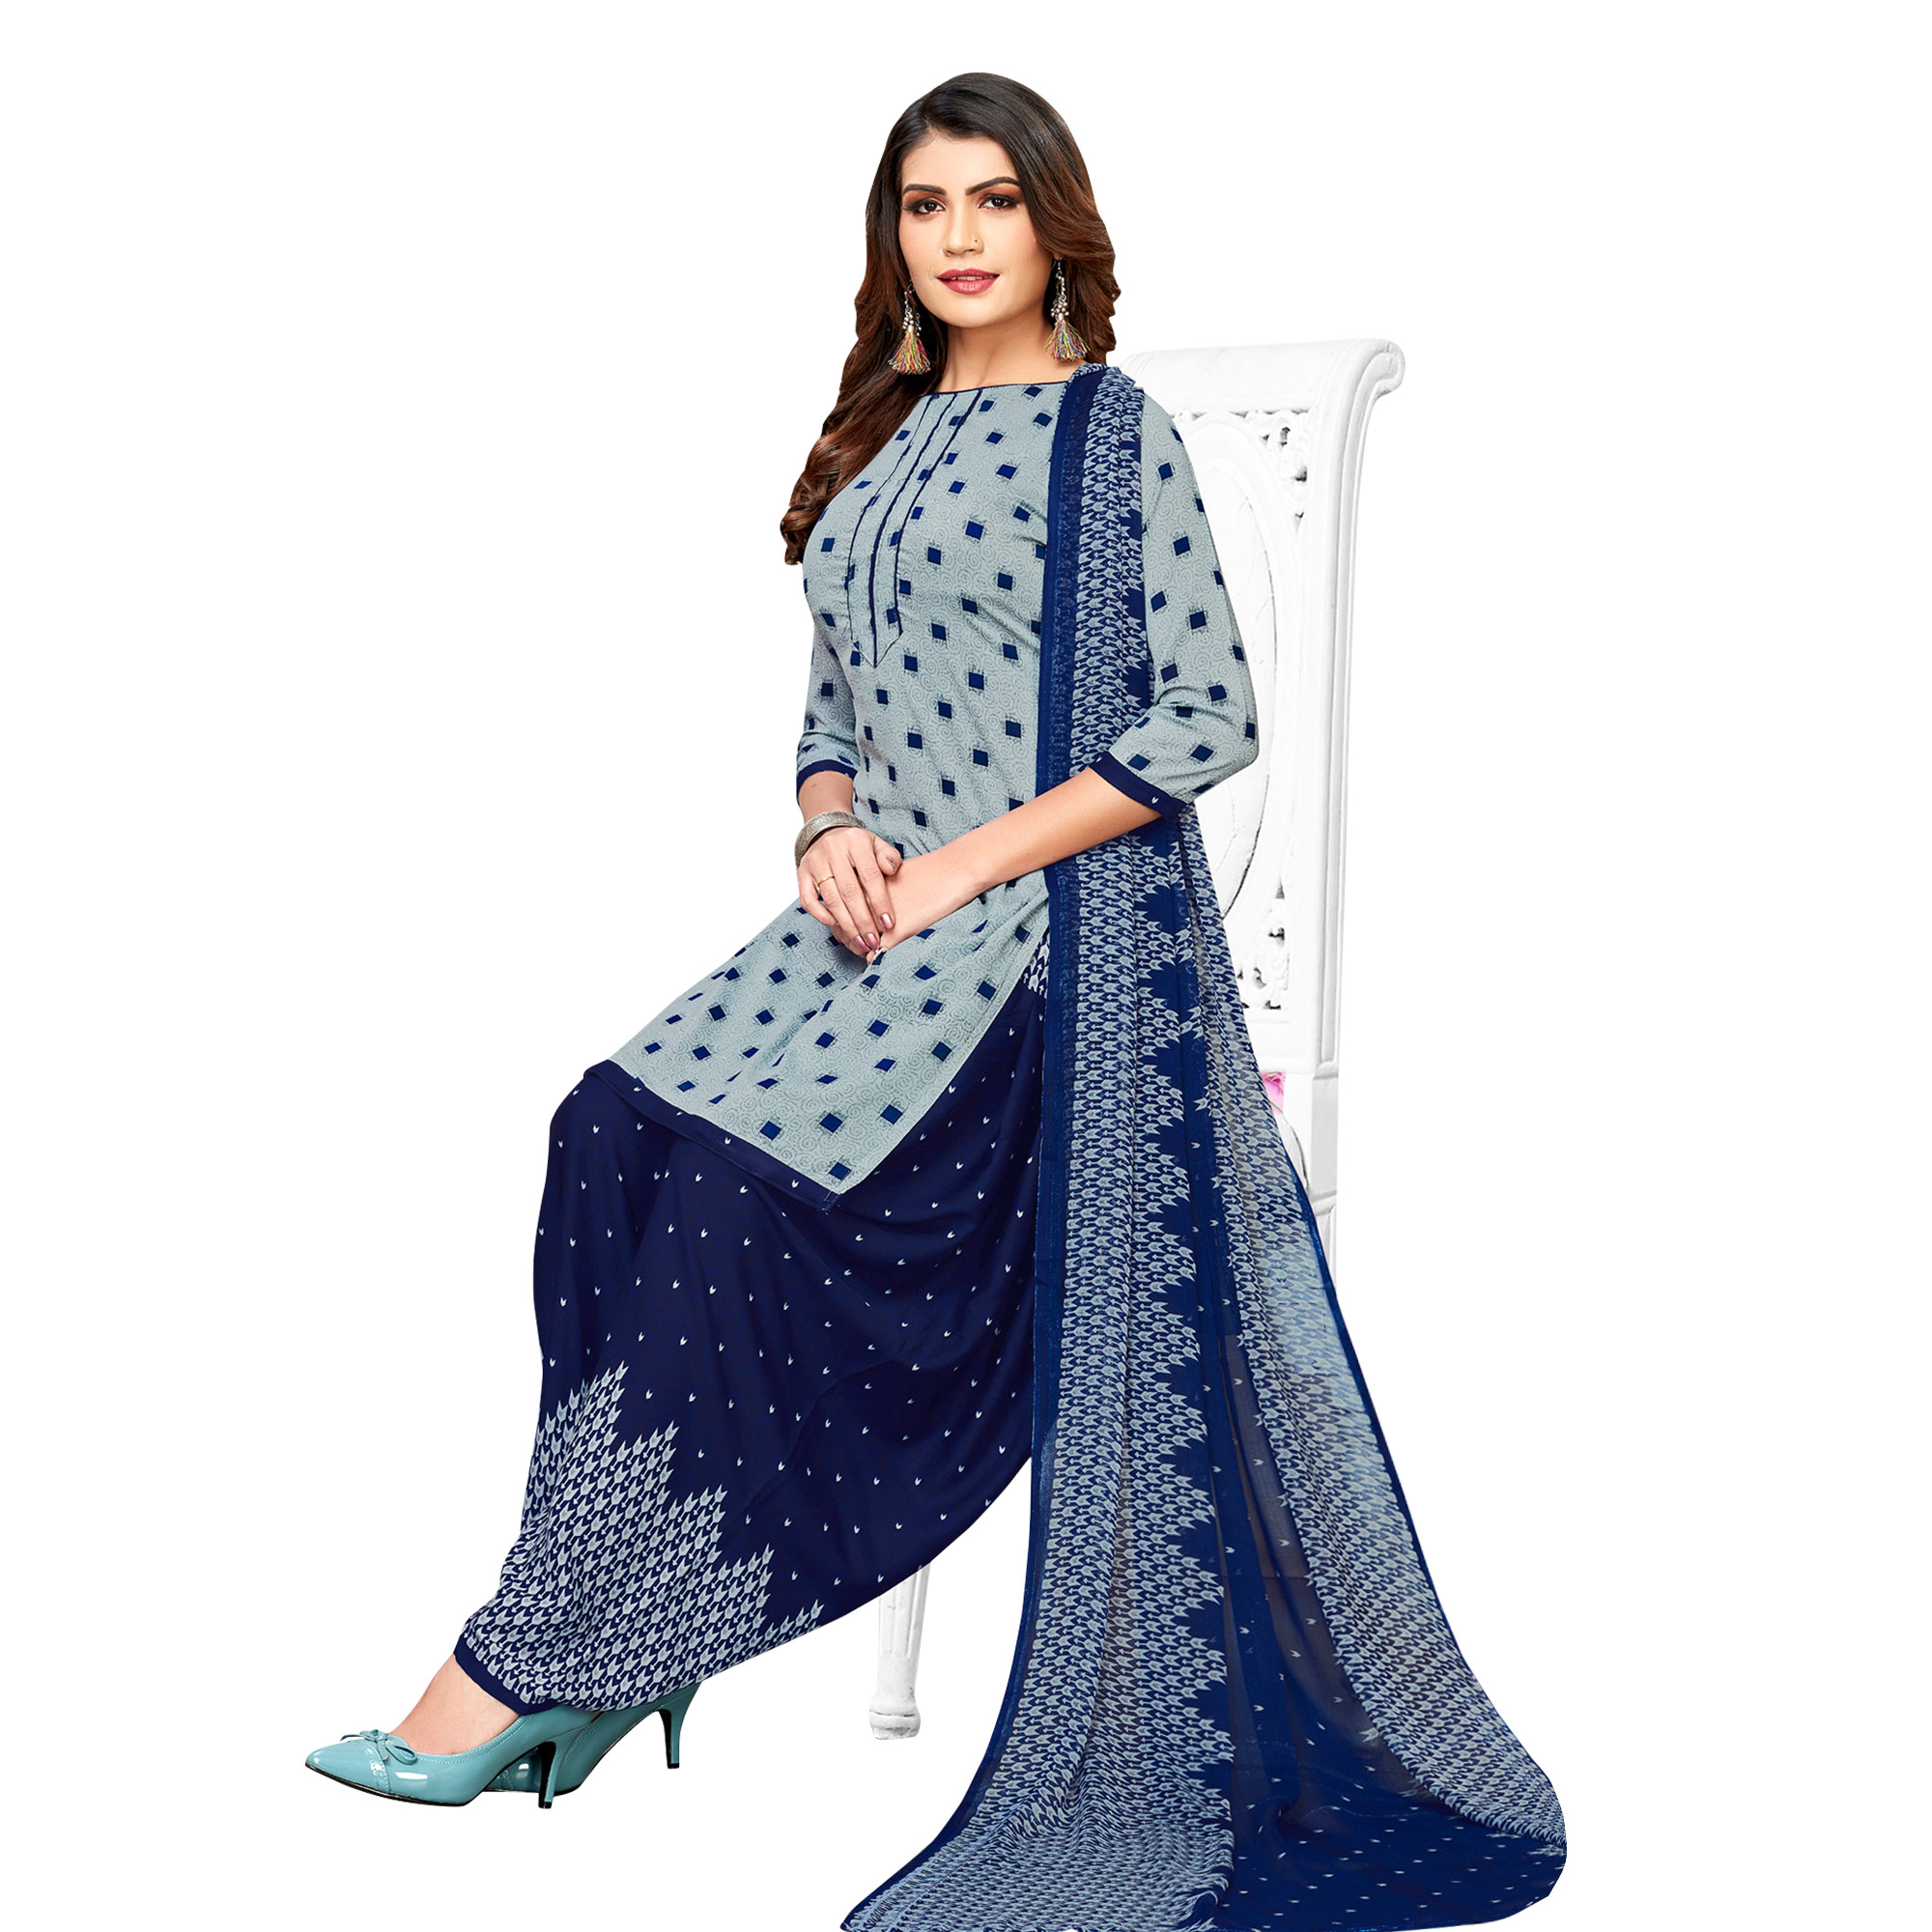 Desirable Yellow-Grey Colored Casual Printed Crepe Patiala Suit - Pack of 2